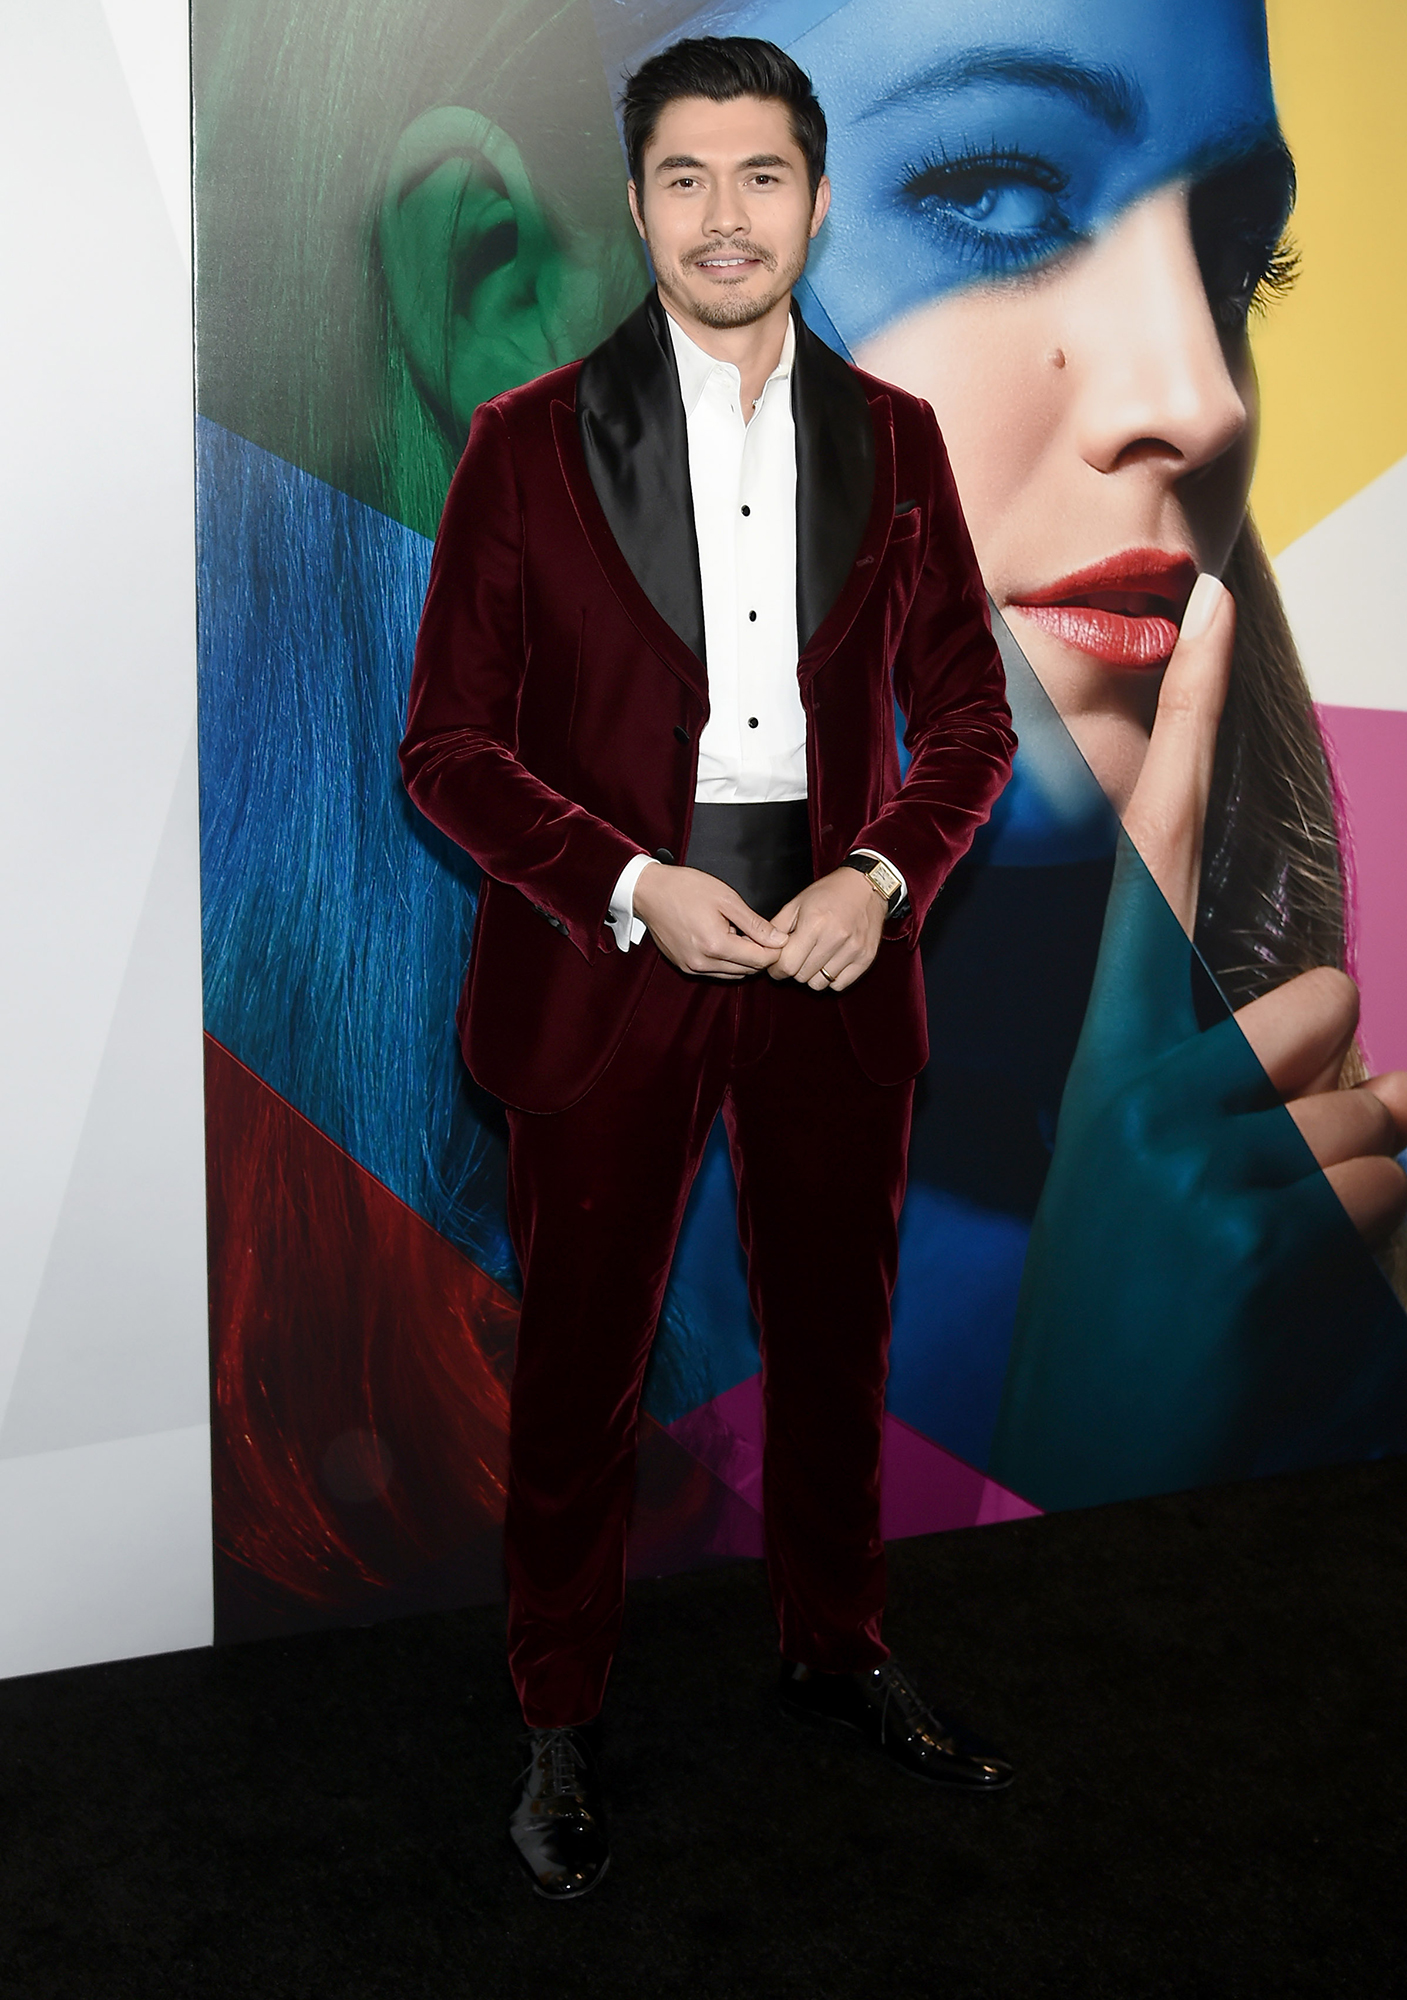 Hottest Guys in Suits - 2018 Edition - The breakout heartthrob of 2018 ( Crazy Rich Asian's Nick Young, anyone?) proved to be a bonafide style star in a black-accented burgundy velvet tux at the A Simple Favor premiere in NYC.